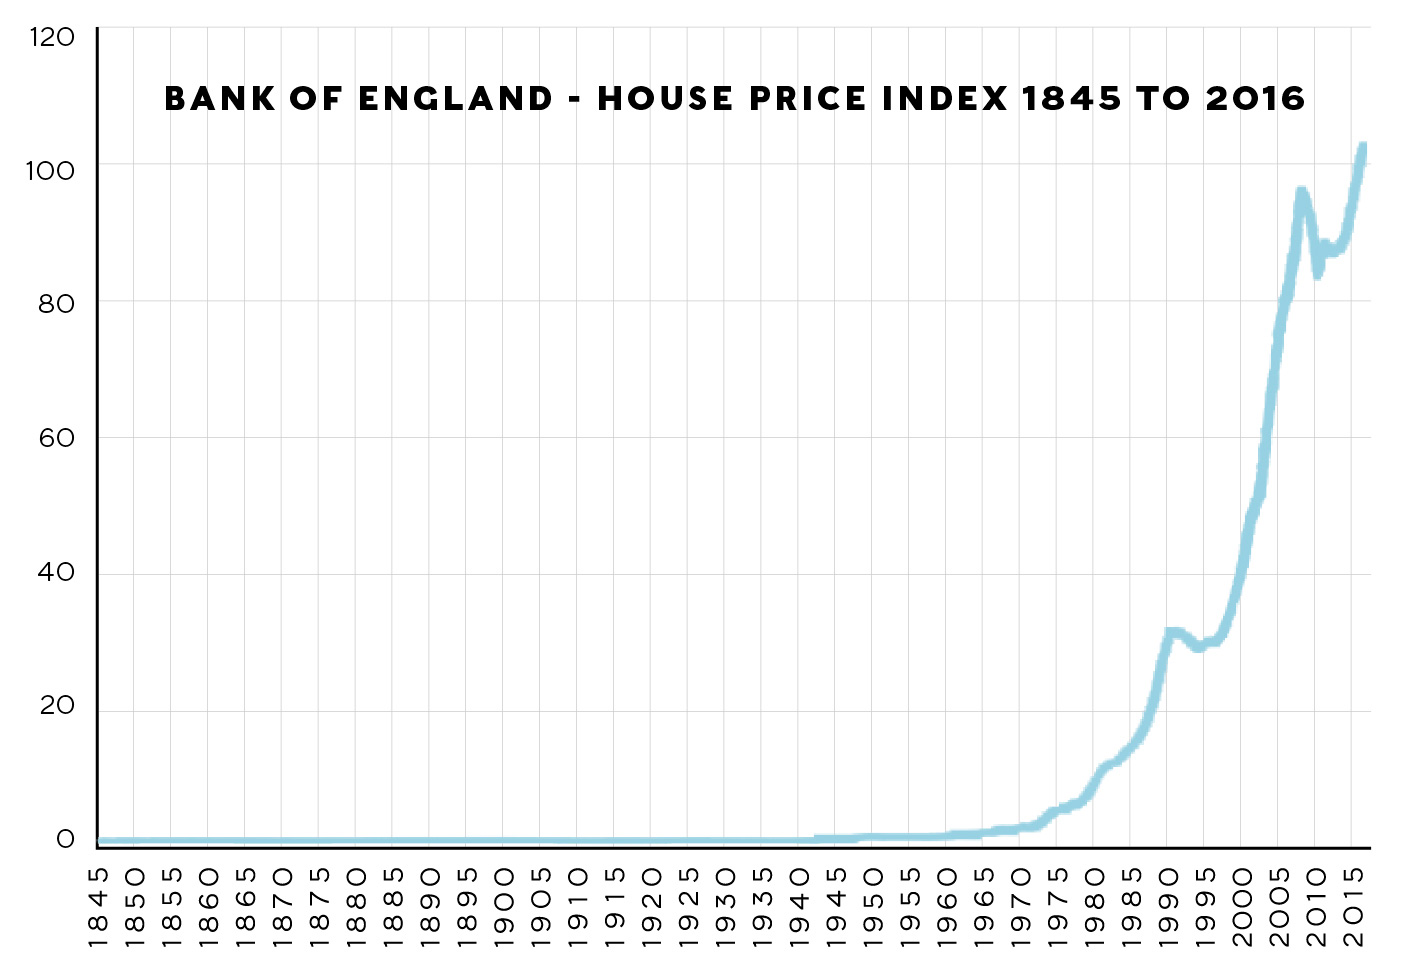 Bank of England house price index 1845 to 2016